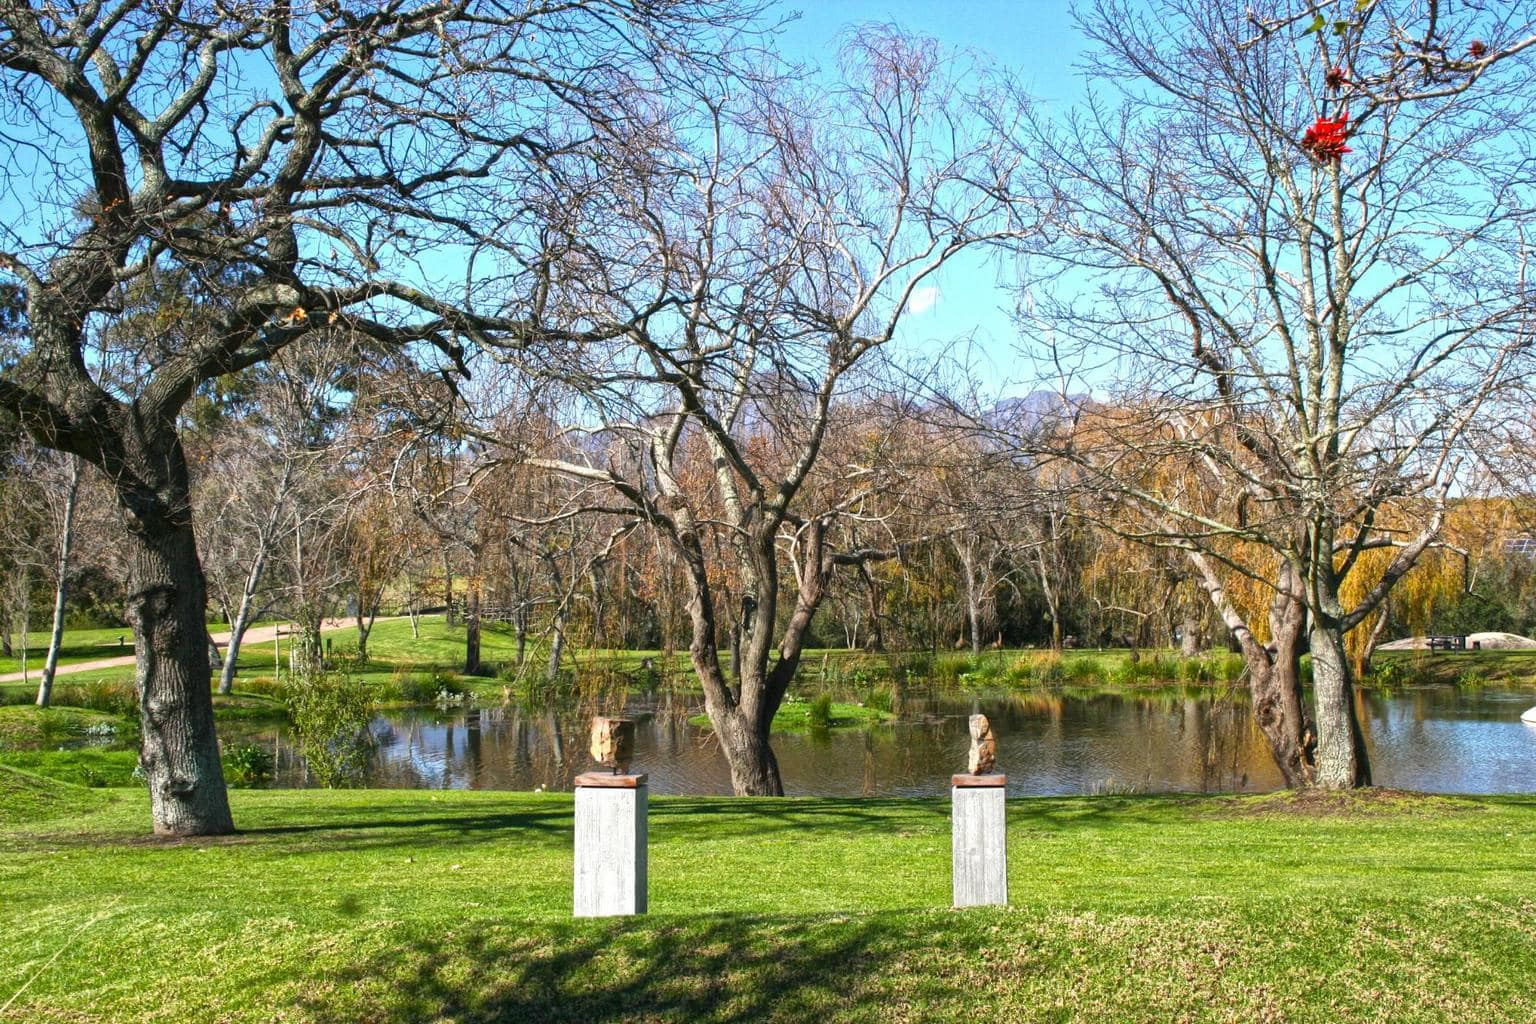 Sculptures at Spier